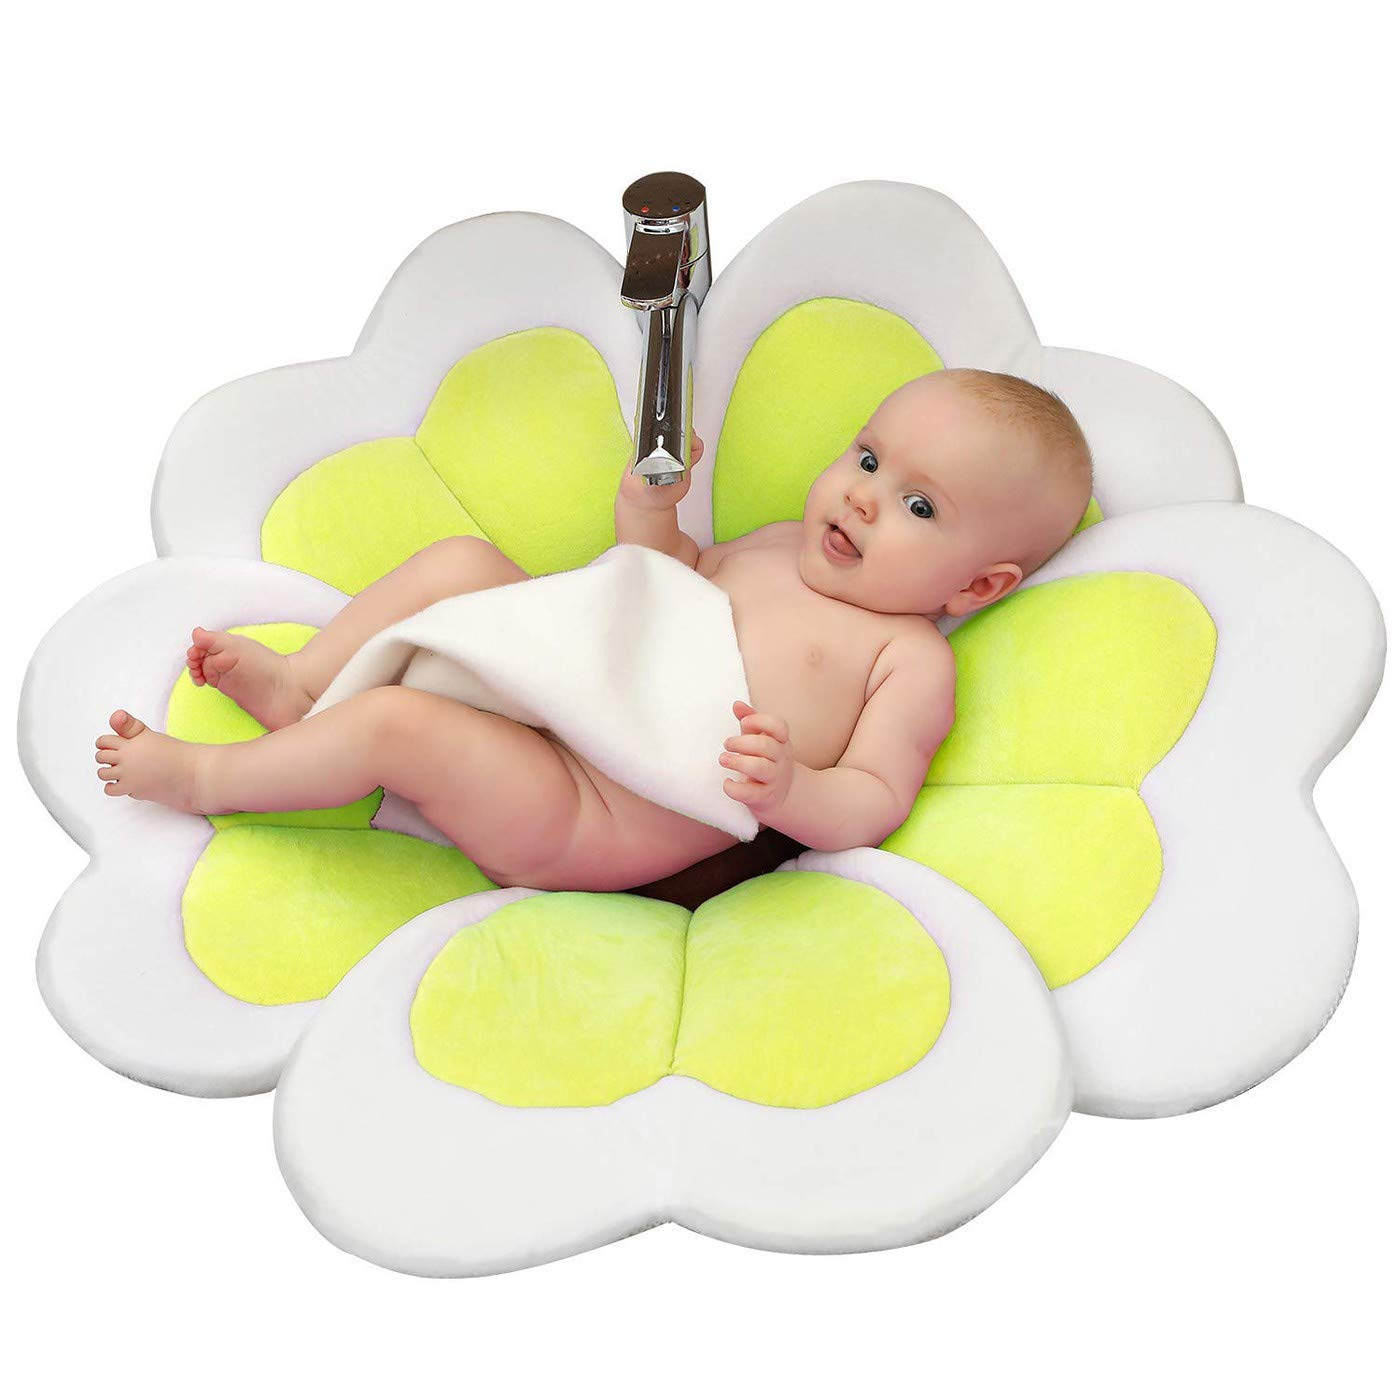 VERNASSA Baby Flower Bath Tub, Wash Flower Cushion Support for Sink Baths VE028-Yellow